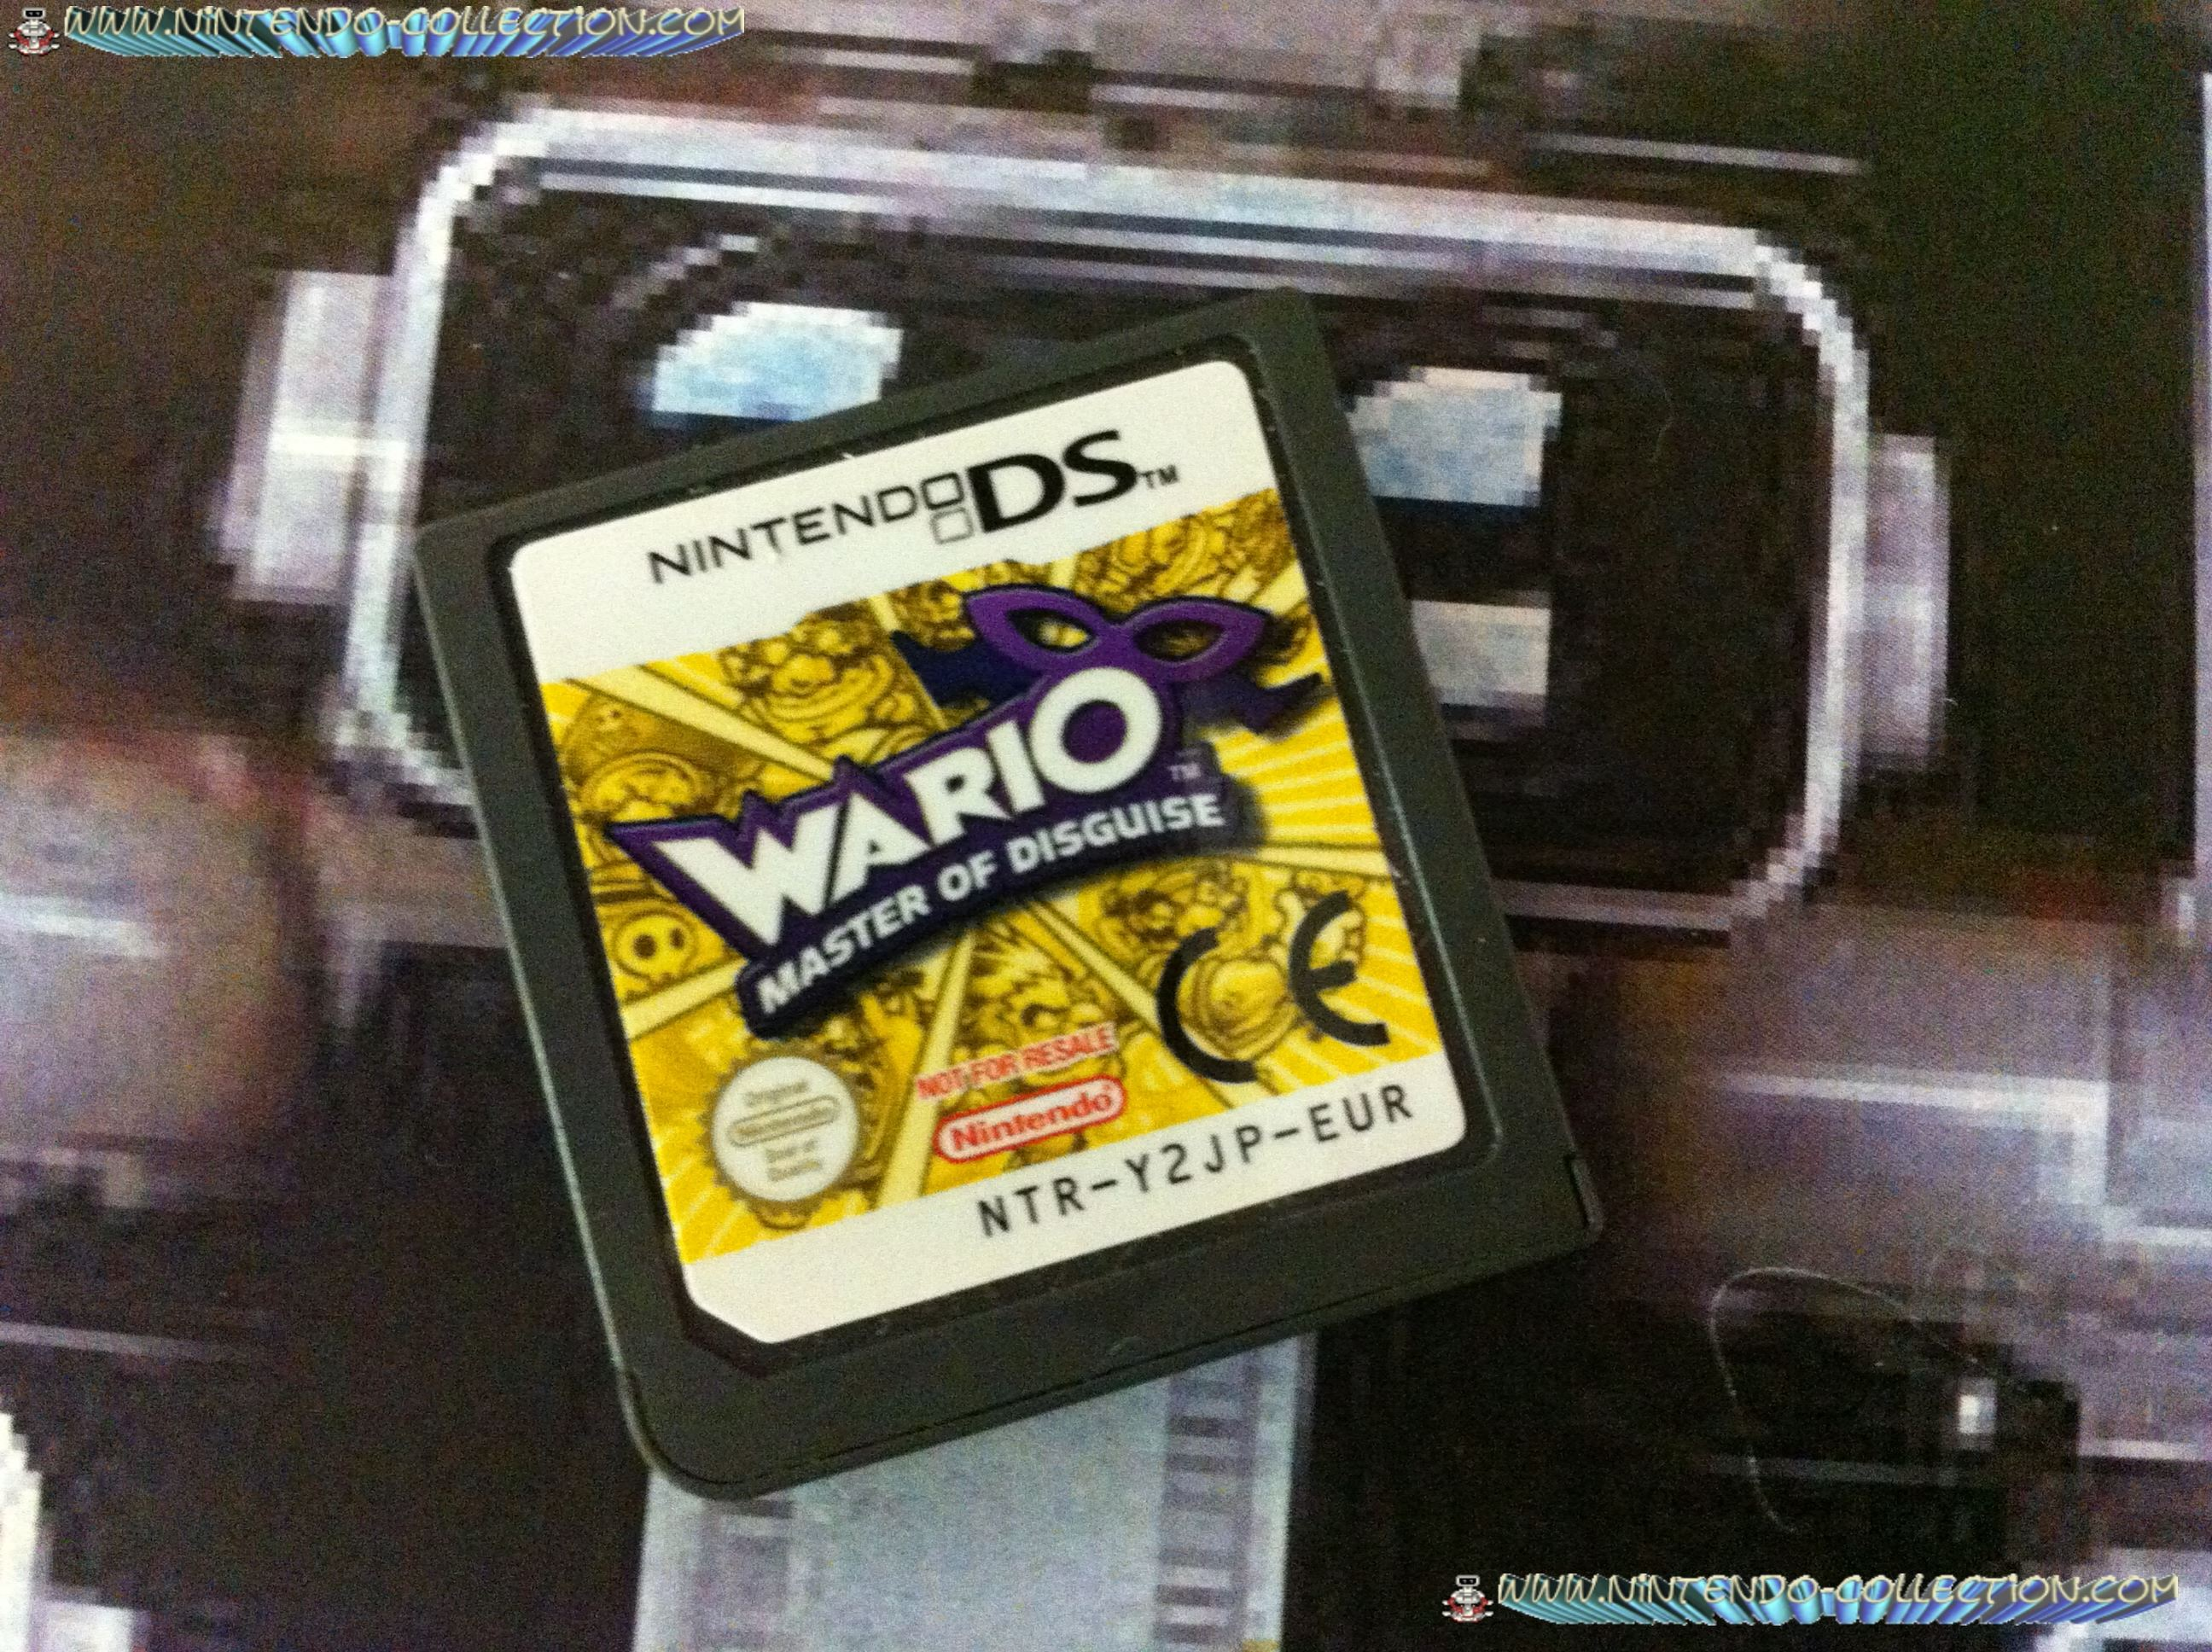 www.nintendo-collection.com - Demo DS 3 DS - Not For Resale - Wario Master of disguise